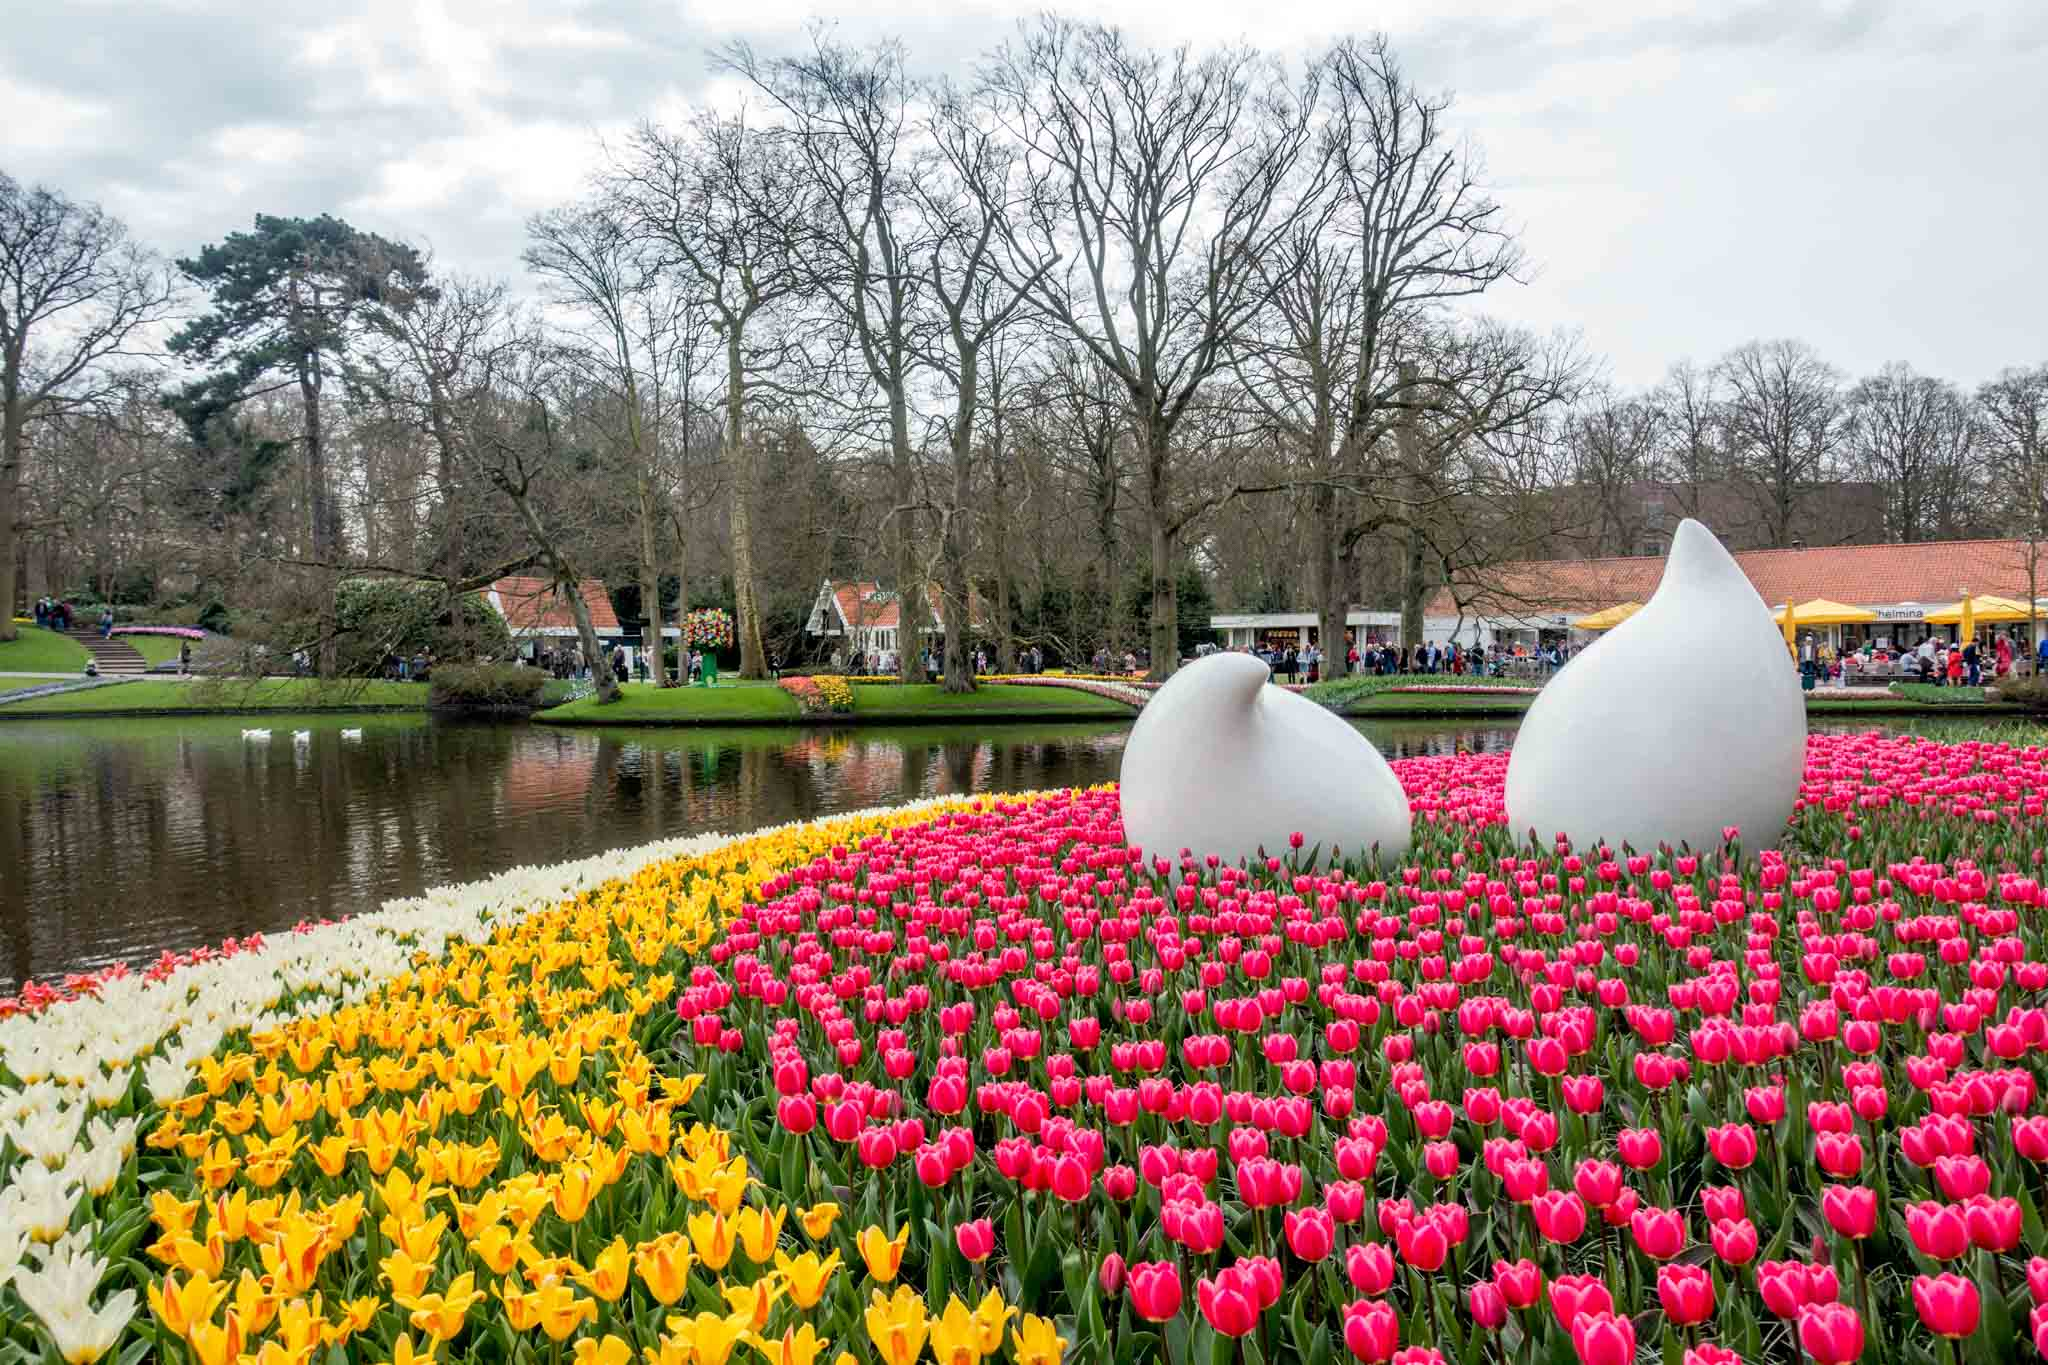 Keukenhof gardens a half-hour from Amsterdam is one of the Netherlands' most famous attractions